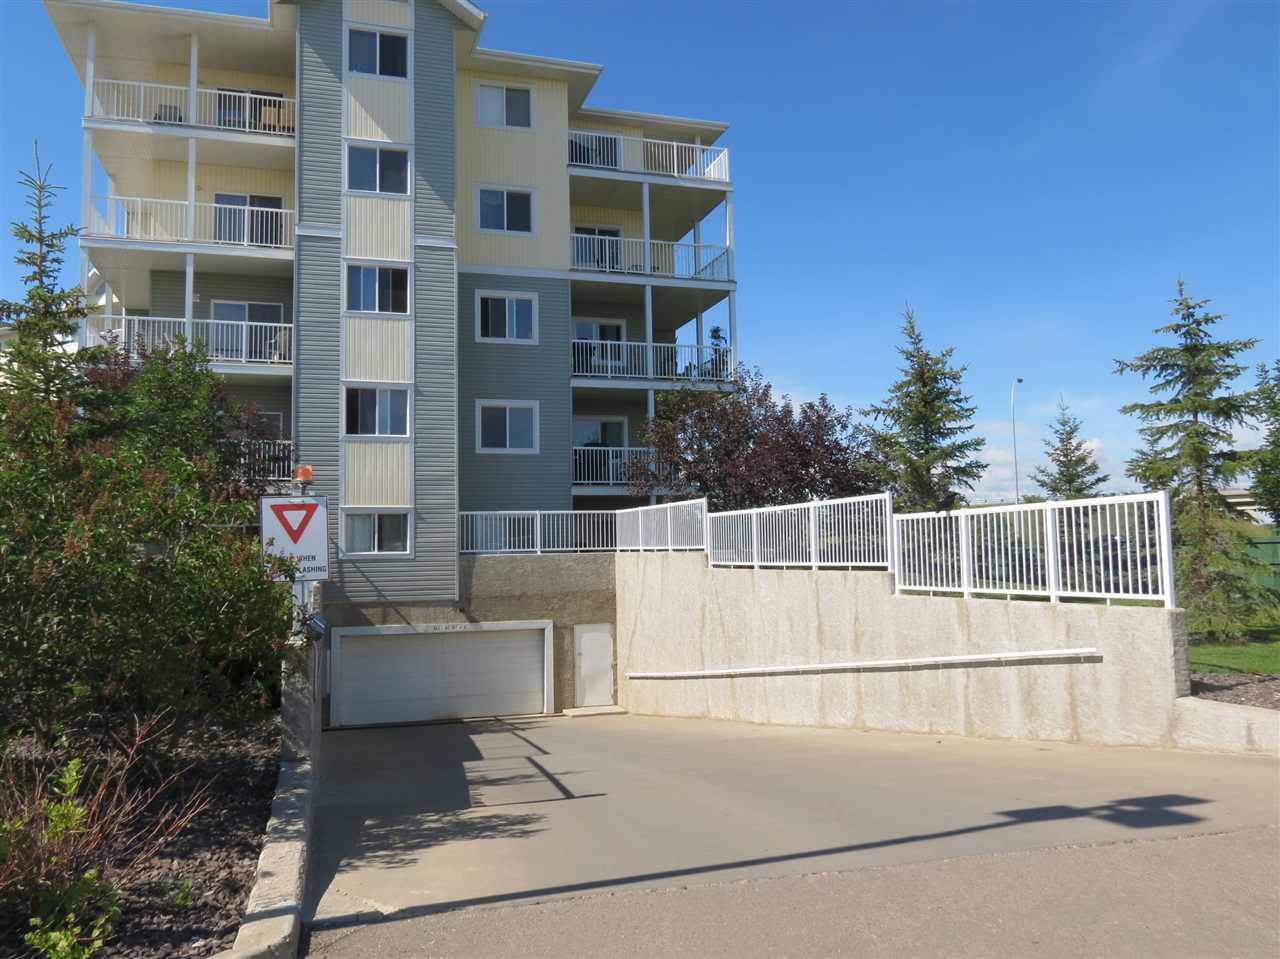 Photo 5: 106 9910 107 Street: Morinville Condo for sale : MLS® # E4073141